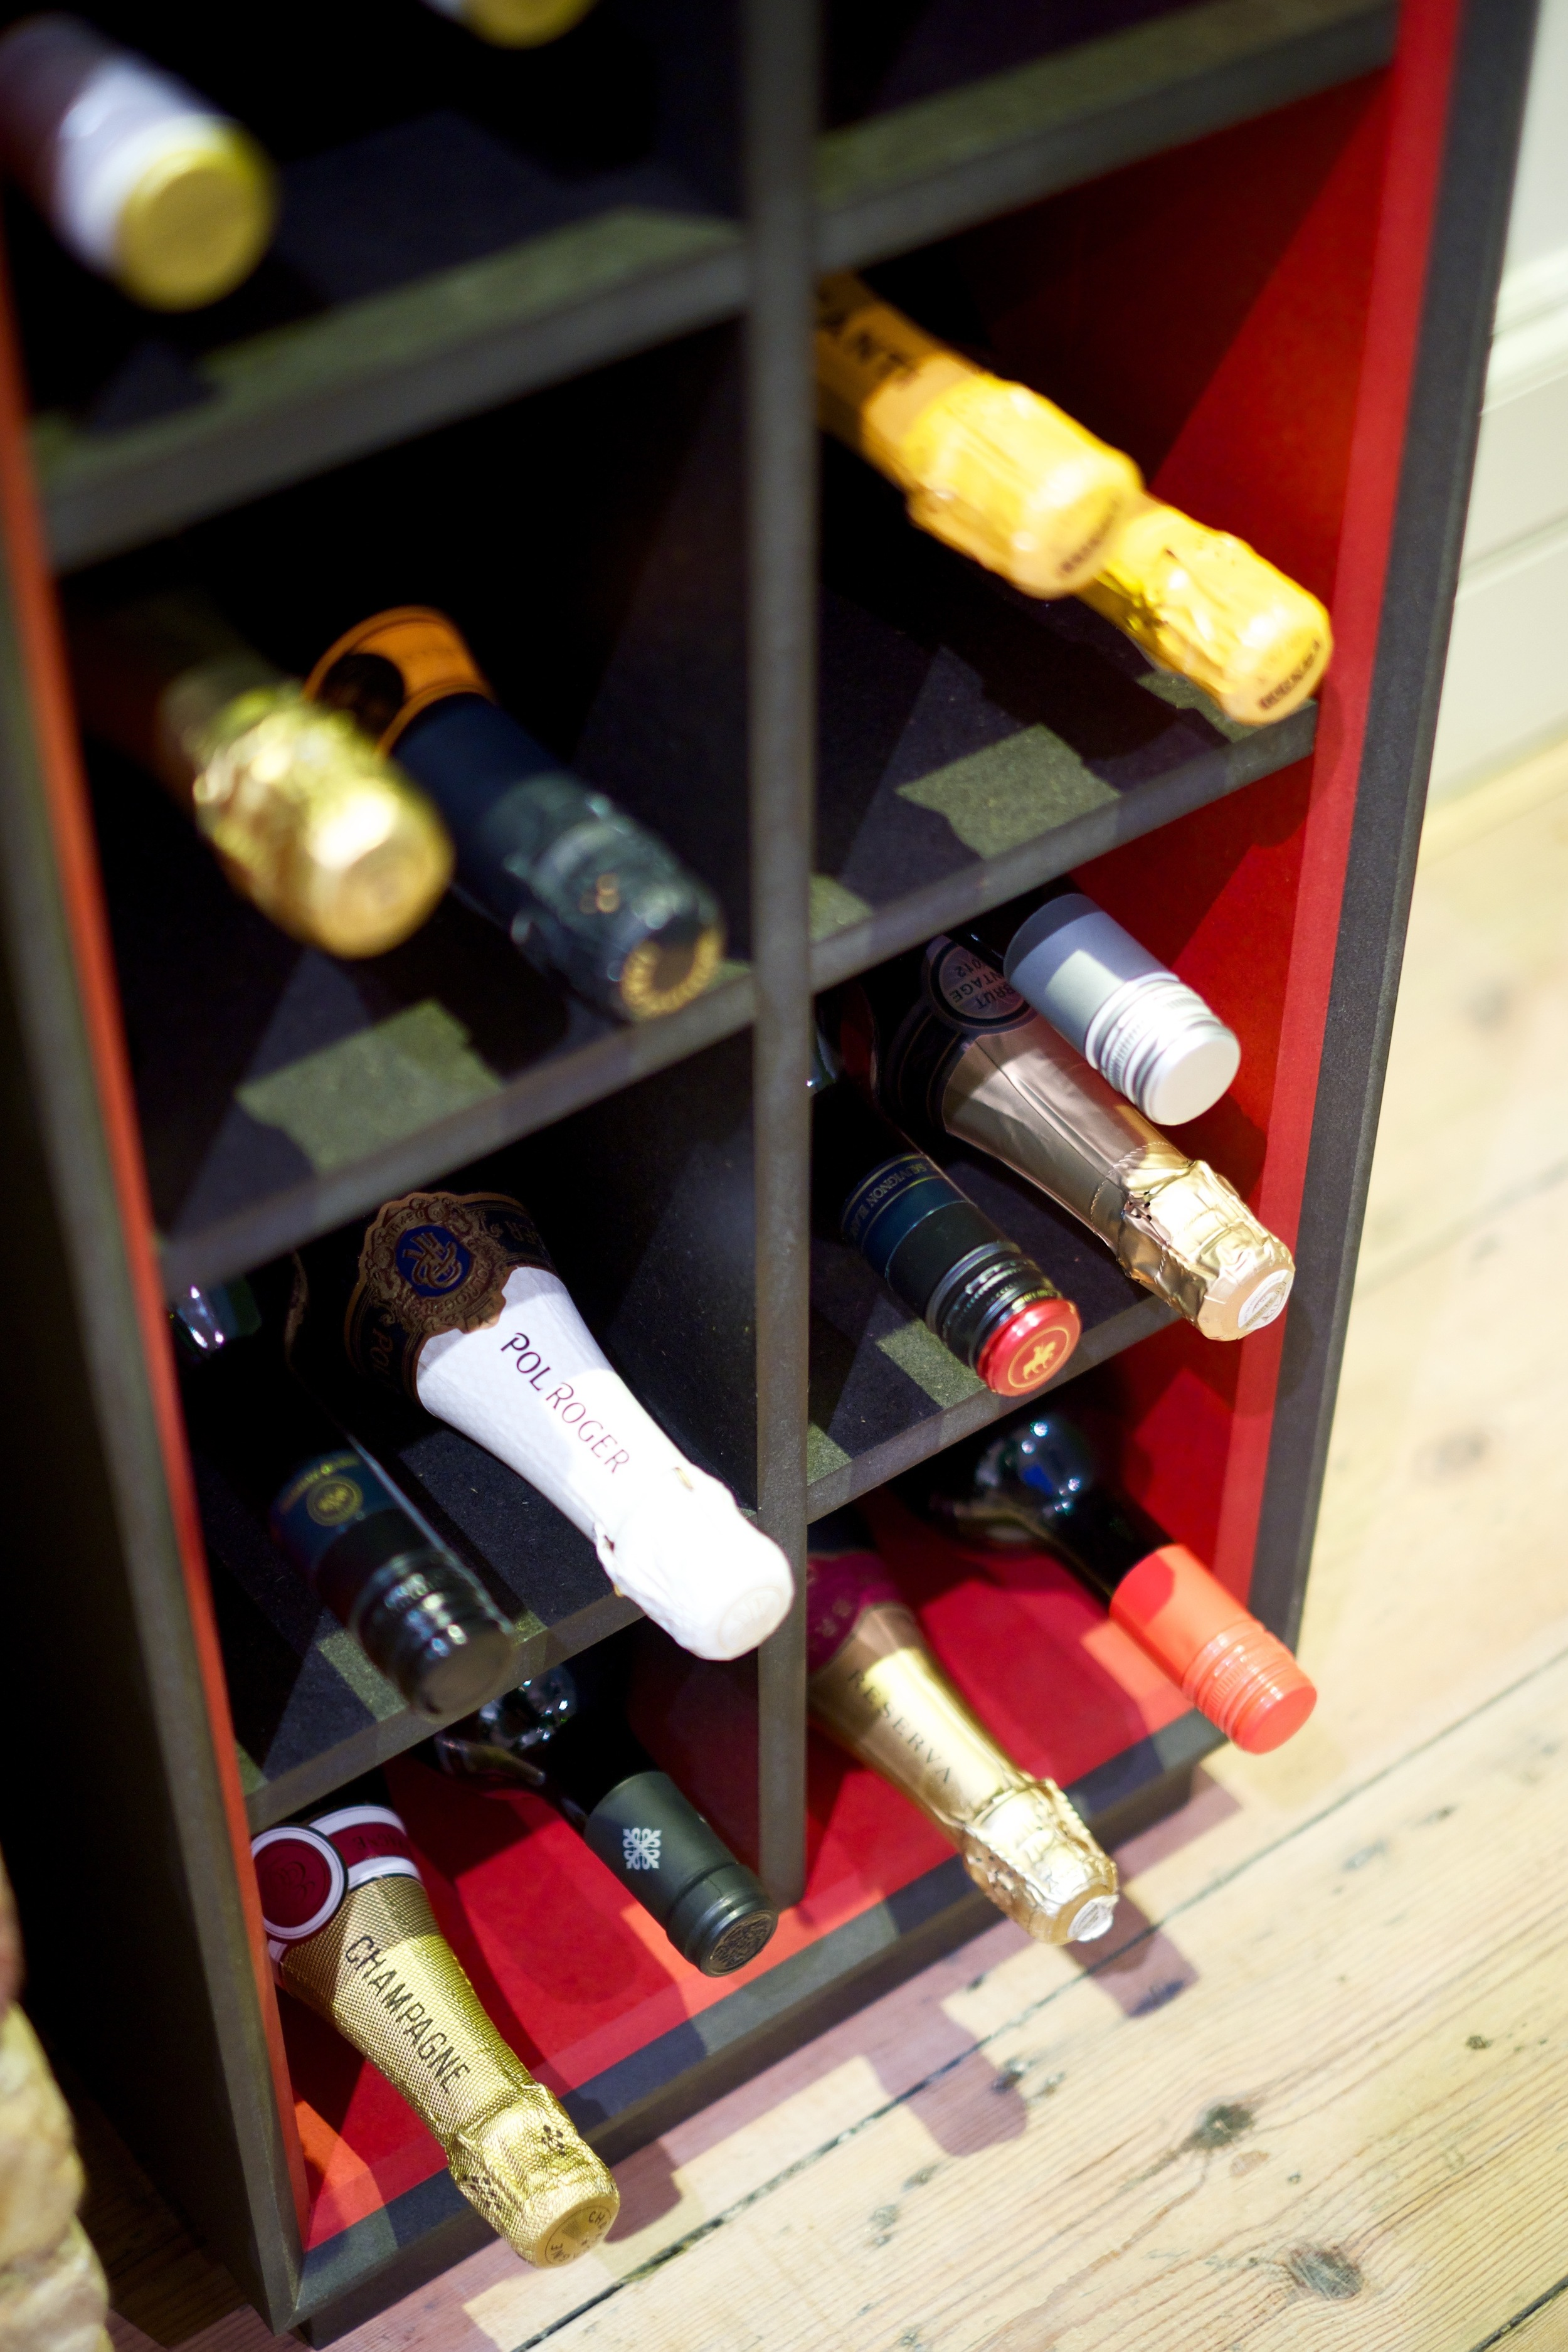 The Standard18 is extremely flexible and can accommodate a variety of bottle shapes and sizes.